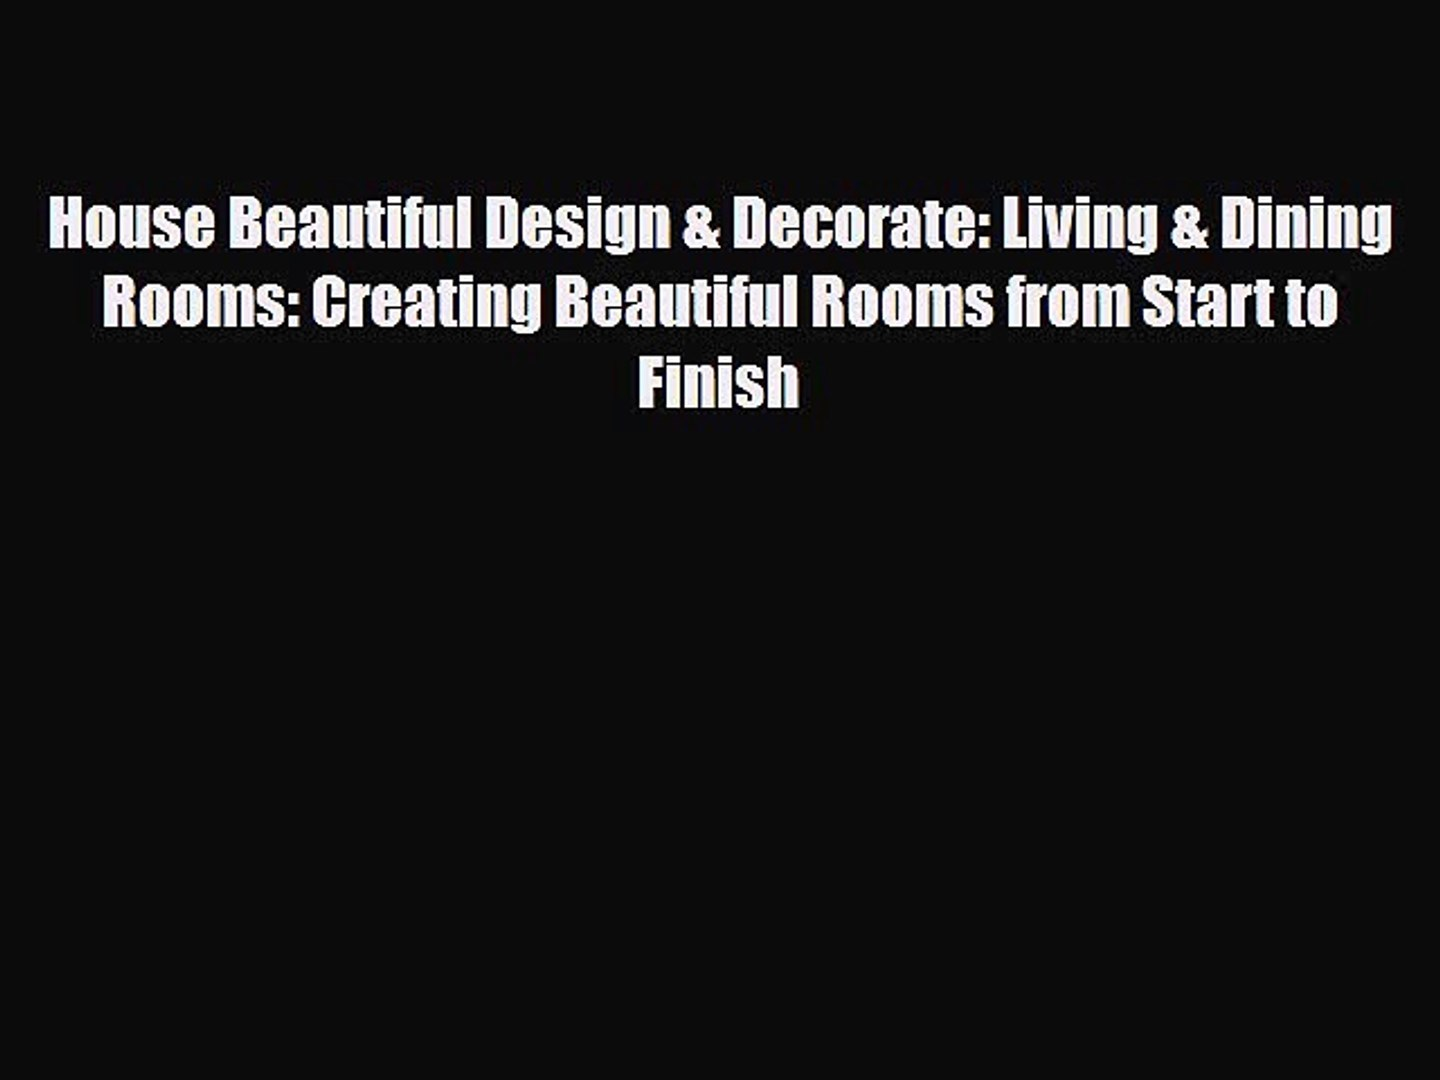 [PDF] House Beautiful Design & Decorate: Living & Dining Rooms: Creating Beautiful Rooms fro